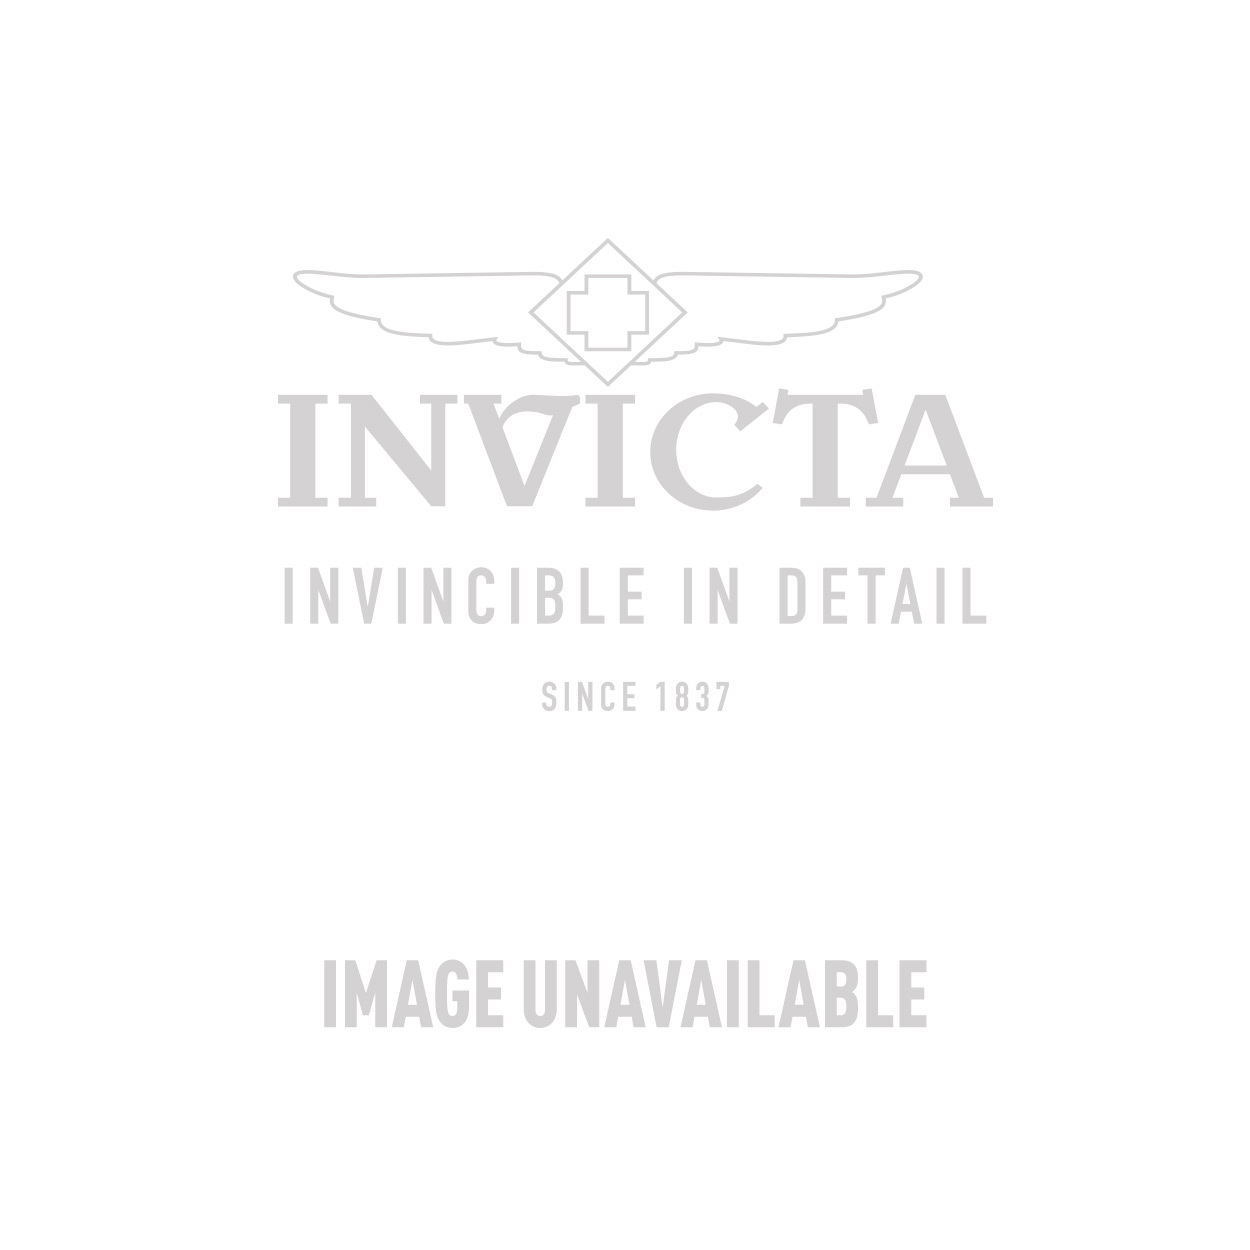 Invicta Reserve Swiss Made Quartz Watch - Gold, Gunmetal case with Gold, Gunmetal tone Stainless Steel band - Model 12982